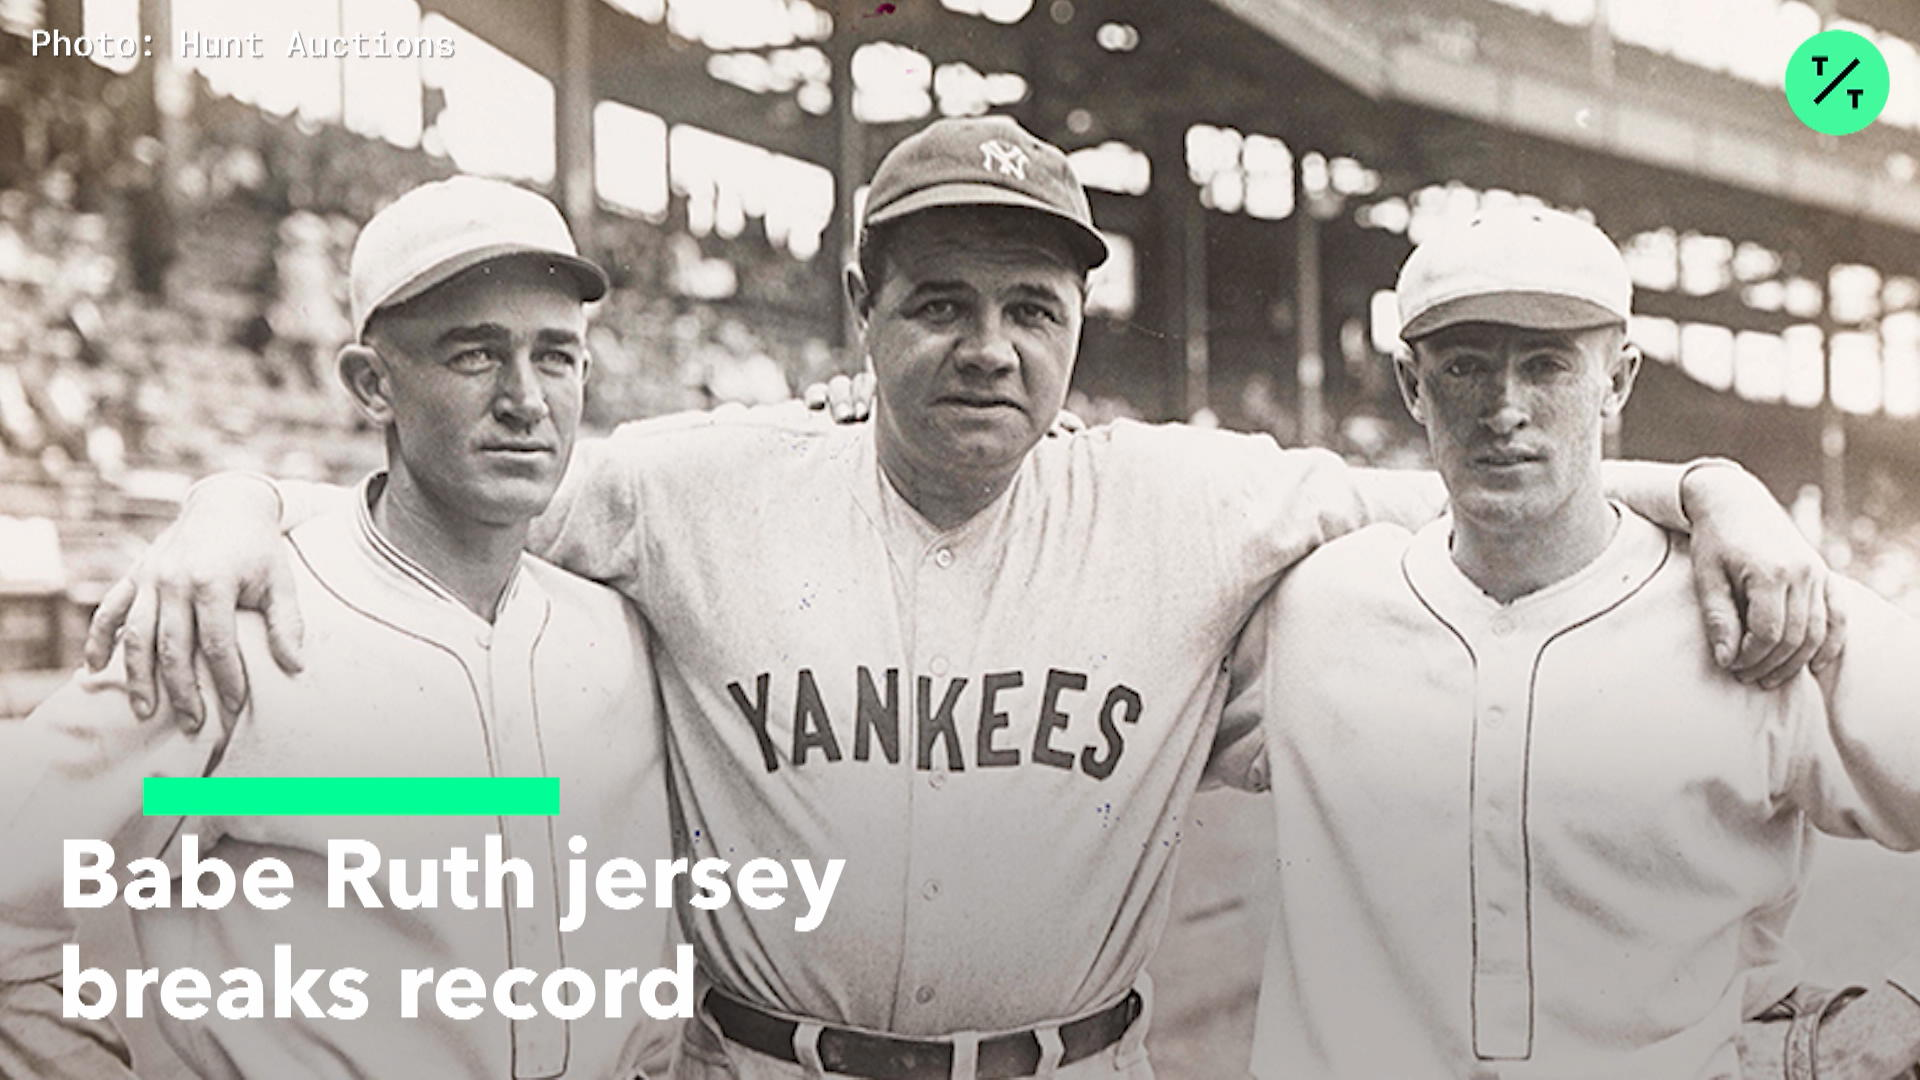 ca1925c1d67 Babe Ruth Jersey Breaks Record – Bloomberg